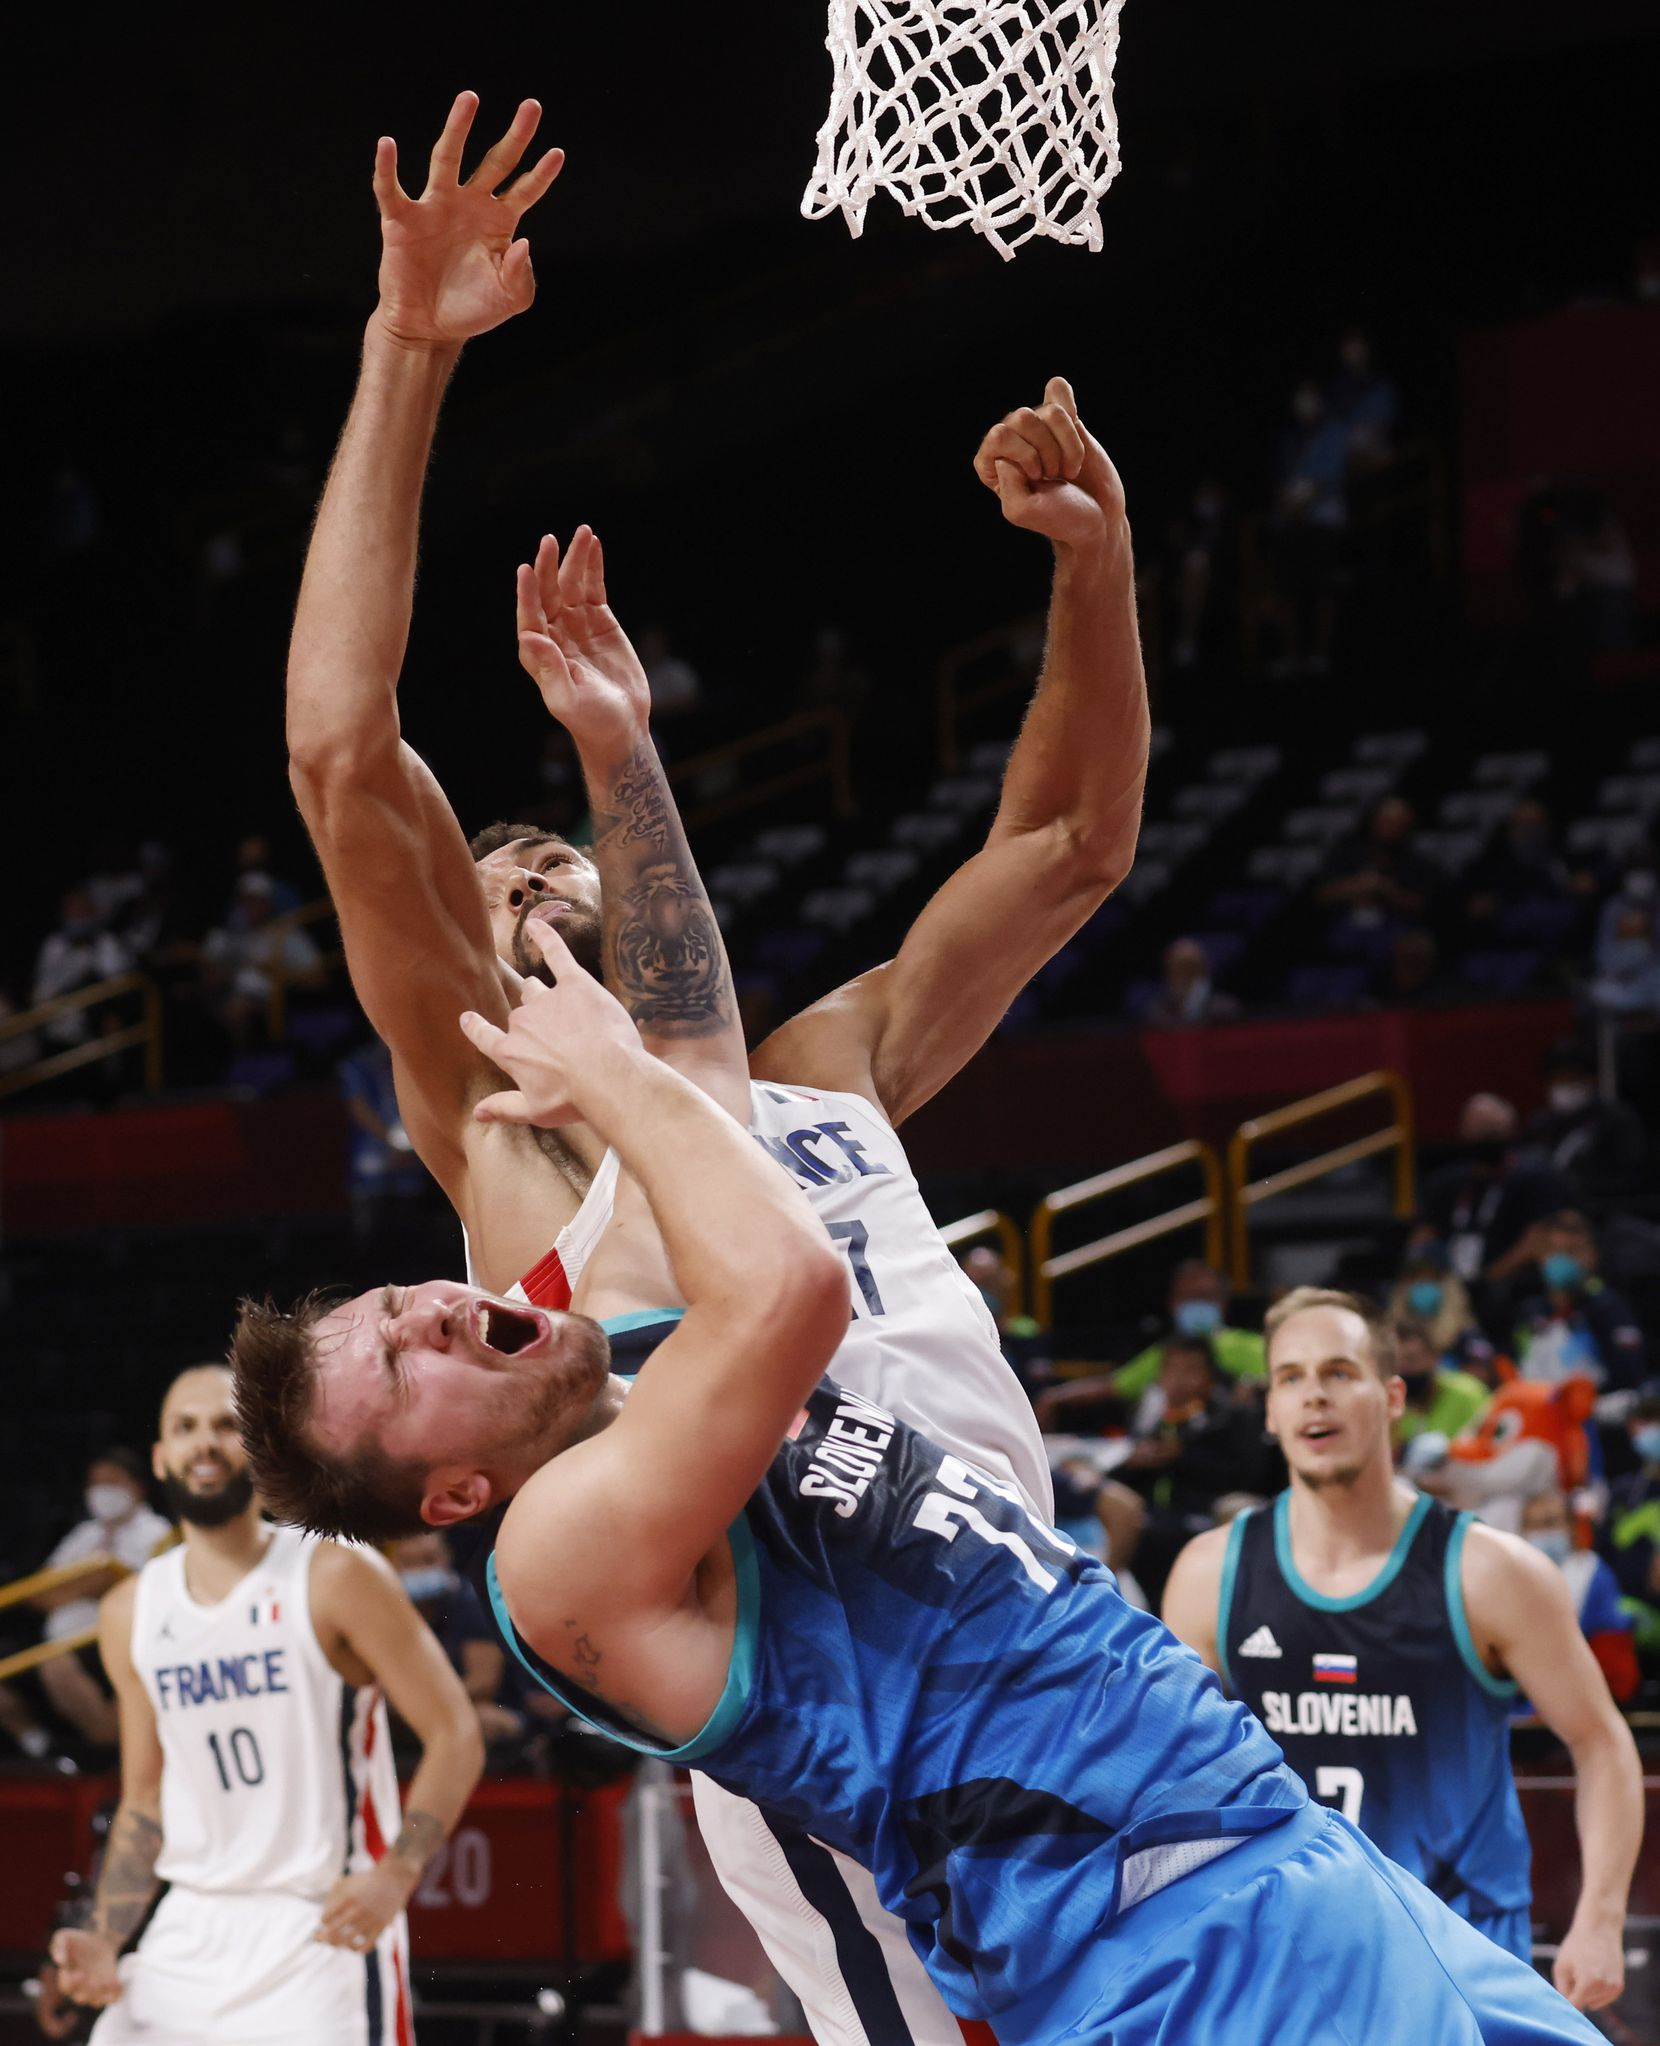 Slovenia's Luka Doncic (77) is hit in the face by France's Rudy Gobert (27) during the second half of a men's basketball semifinal at the postponed 2020 Tokyo Olympics at Saitama Super Arena, on Thursday, August 5, 2021, in Saitama, Japan. France defeated Slovenia 90-89. Slovenia will play in the bronze medal game. (Vernon Bryant/The Dallas Morning News)